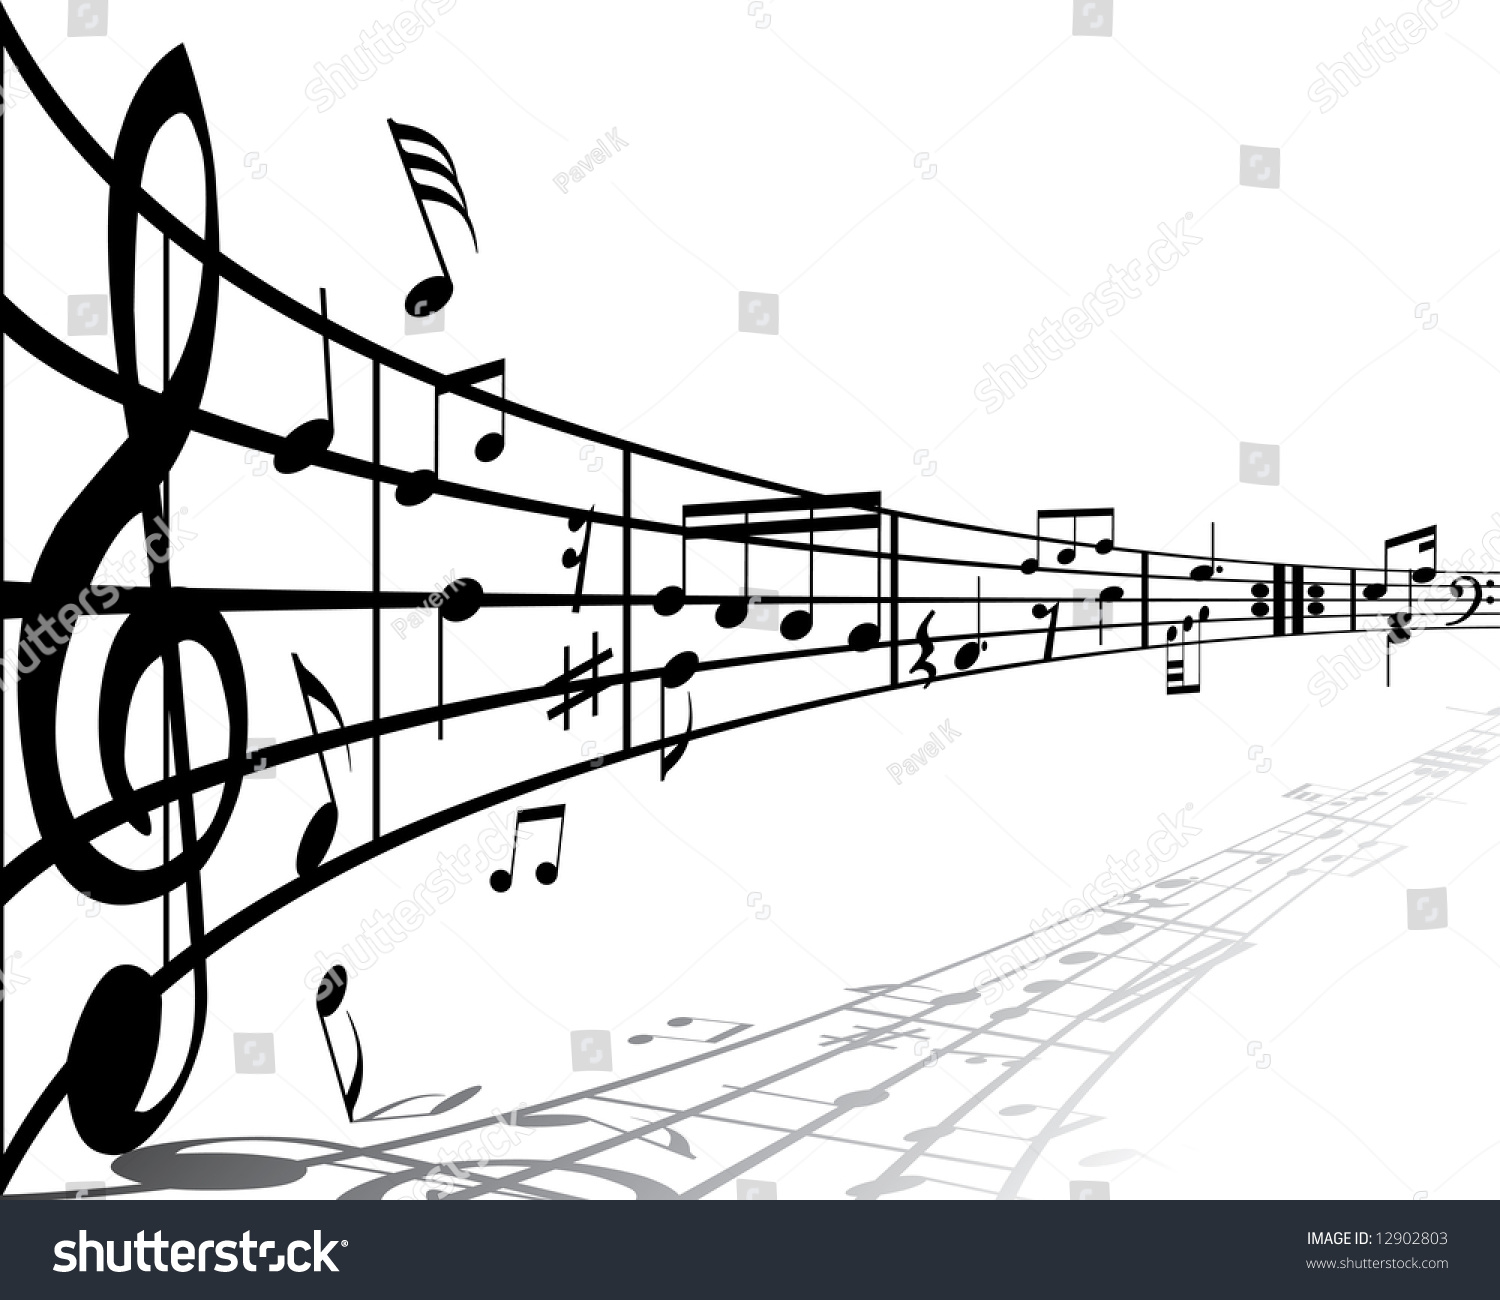 Image result for picture of a music staff